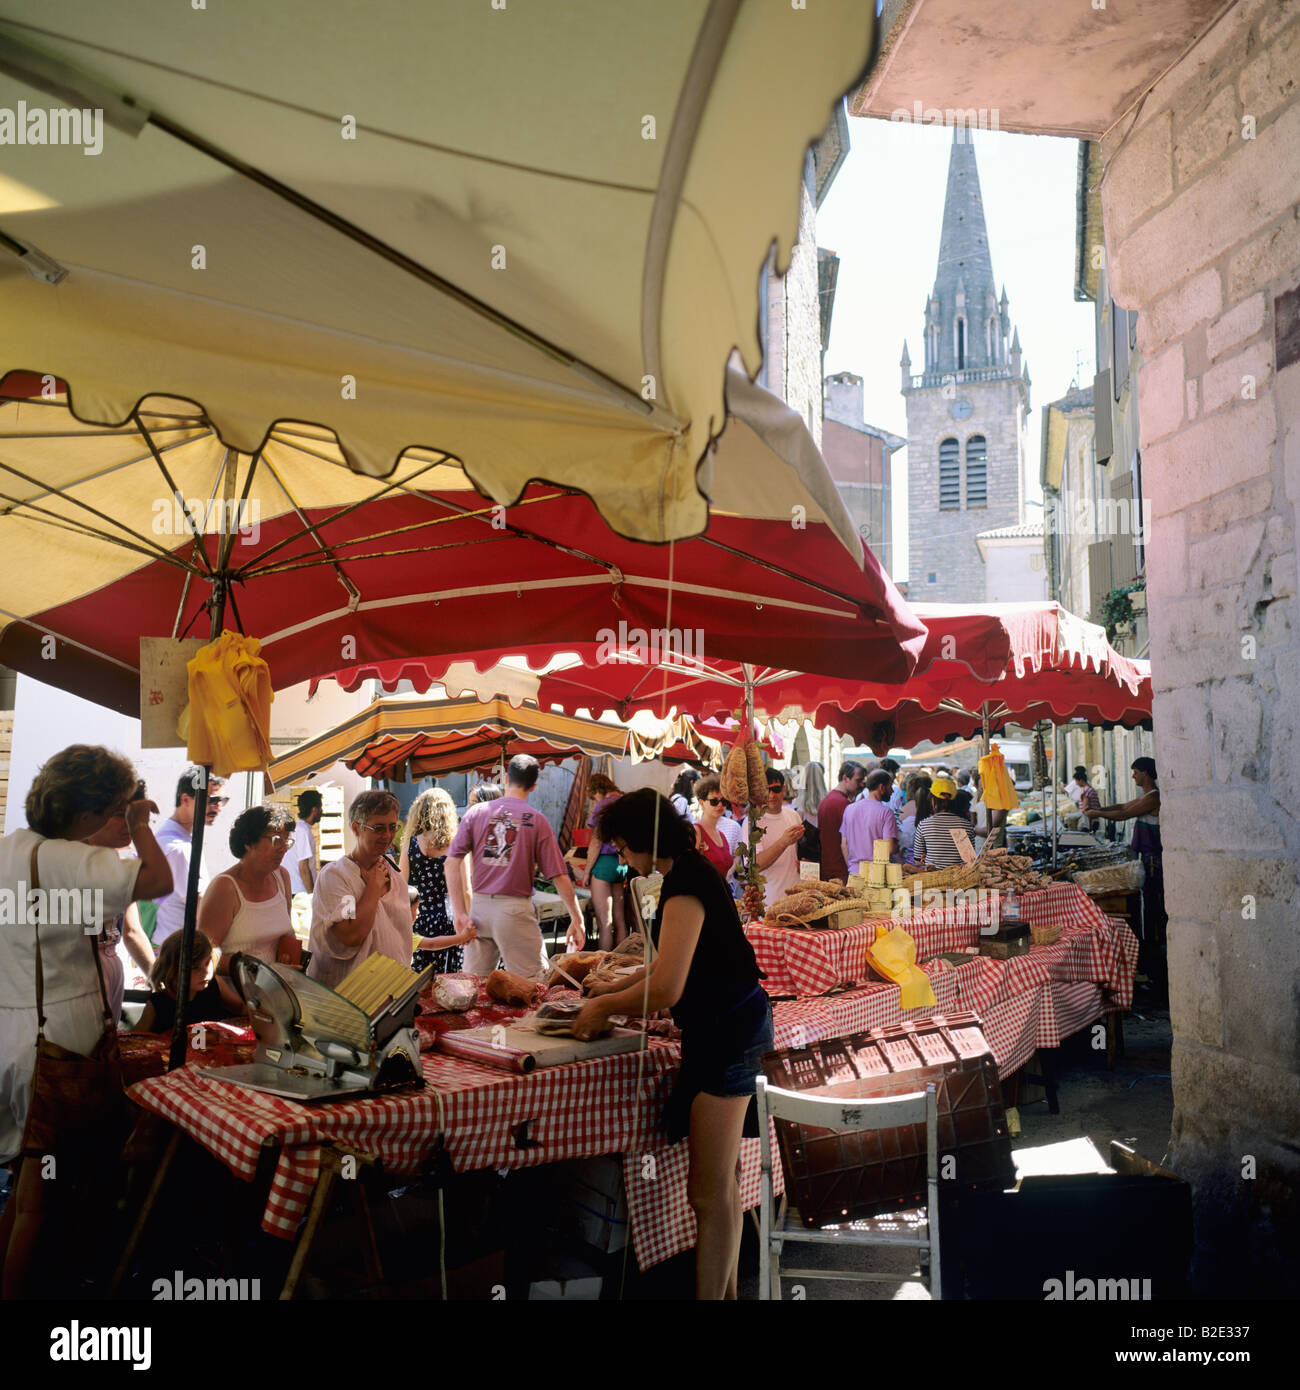 6a86d100d361c9 Butcher stall at weekly street market Les Vans Ardèche France - Stock Image